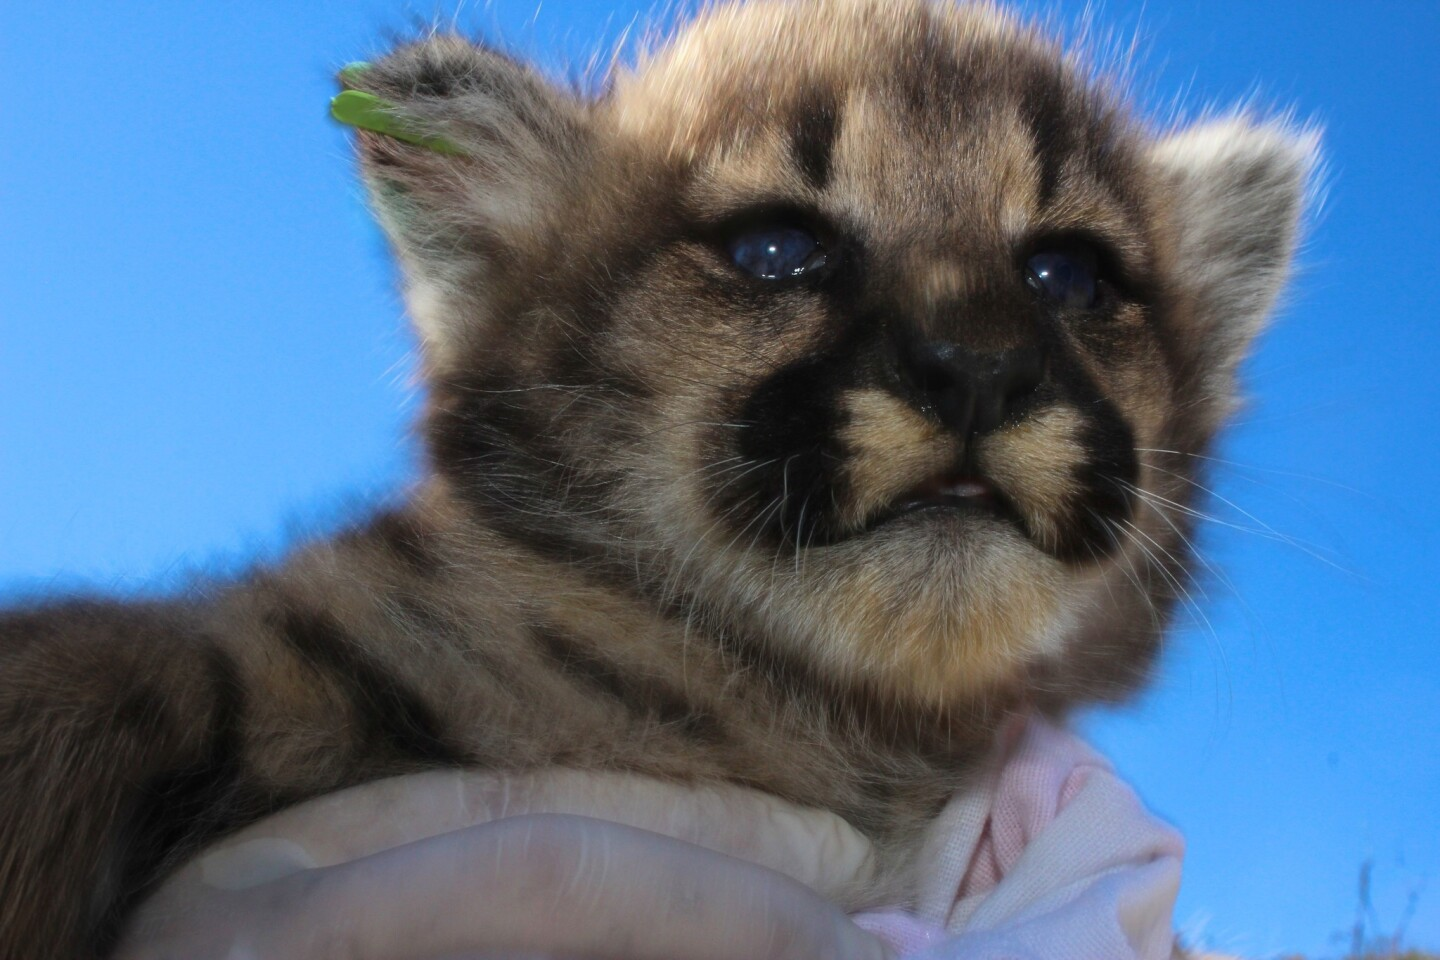 Litter of mountain lion kittens found in Simi Hills